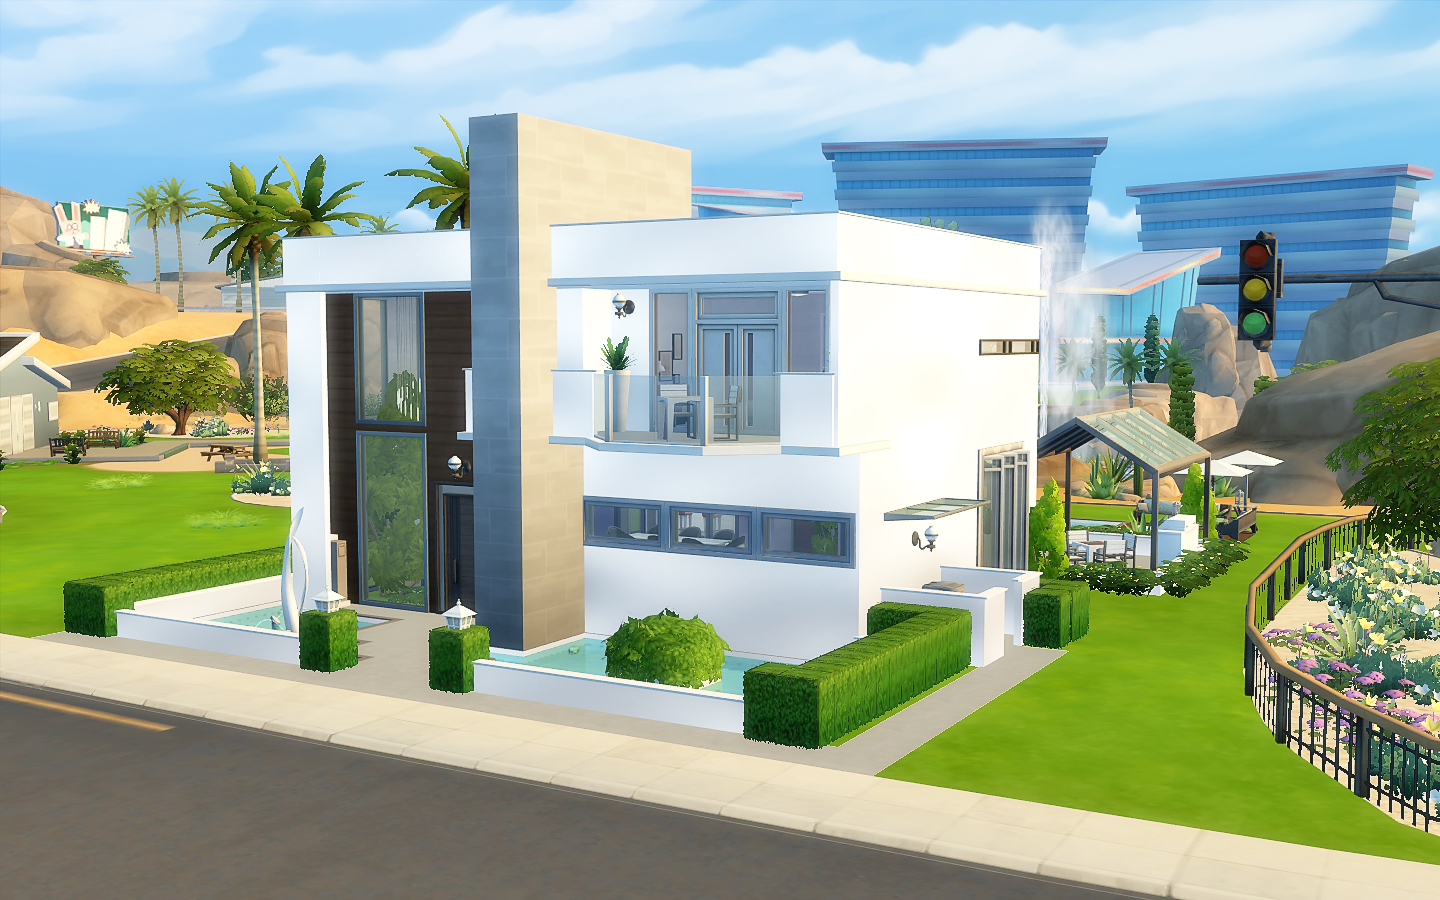 House 24 the sims 4 via sims for Casas modernas sims 4 paso a paso